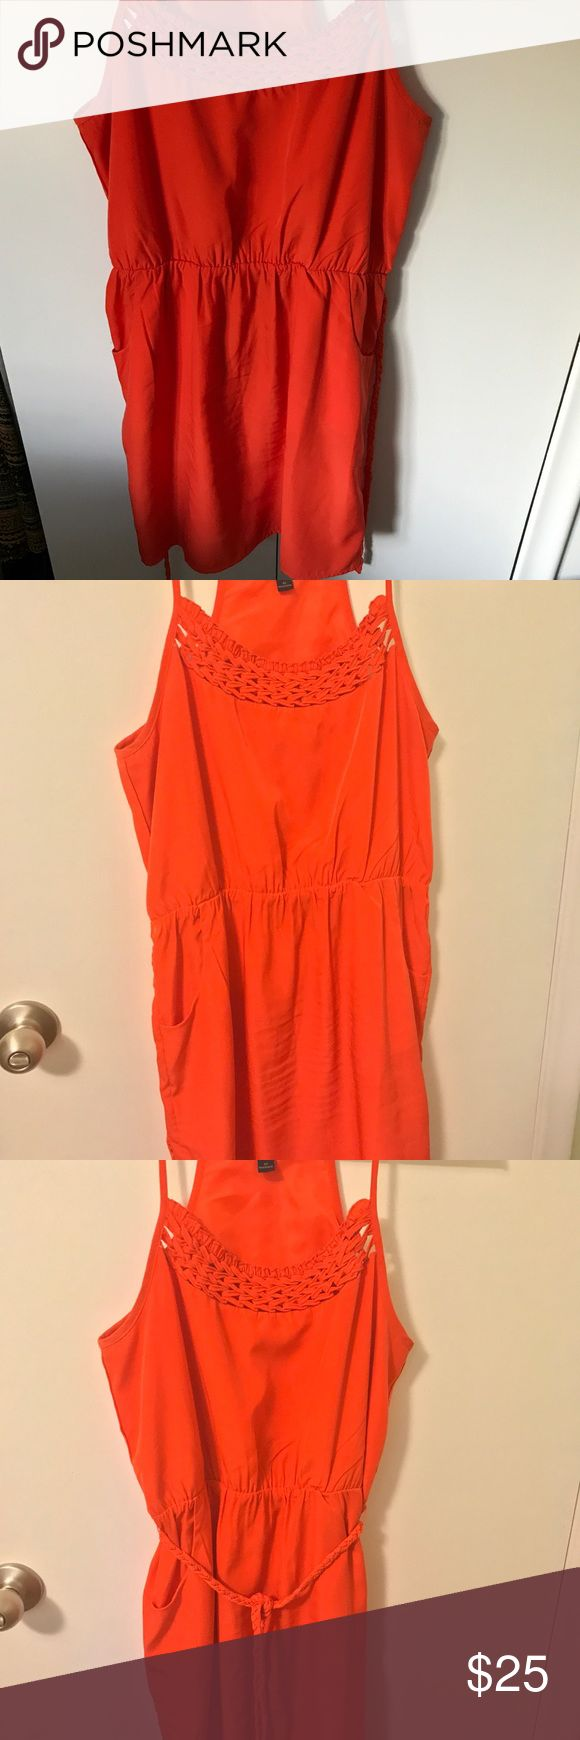 """Banana Republic Petite Cocktail Dress w/ Pockets! Banana Republic Petite Cocktail Dress • Bright Orange • Slightly worn • Has a pocket on either side! • Lattice neckline • Braided belt • Has a shorter lining • Perfect dress for a night out on the town or even a cocktail wedding • Pair with black heels and statement earrings for a classy look! •  100% Polyester shell 100% Polyester Lining • Measured Flat 18.5"""" pit to pit, 34.5"""" shoulder to hem • All measurements approximate. Banana Republic…"""